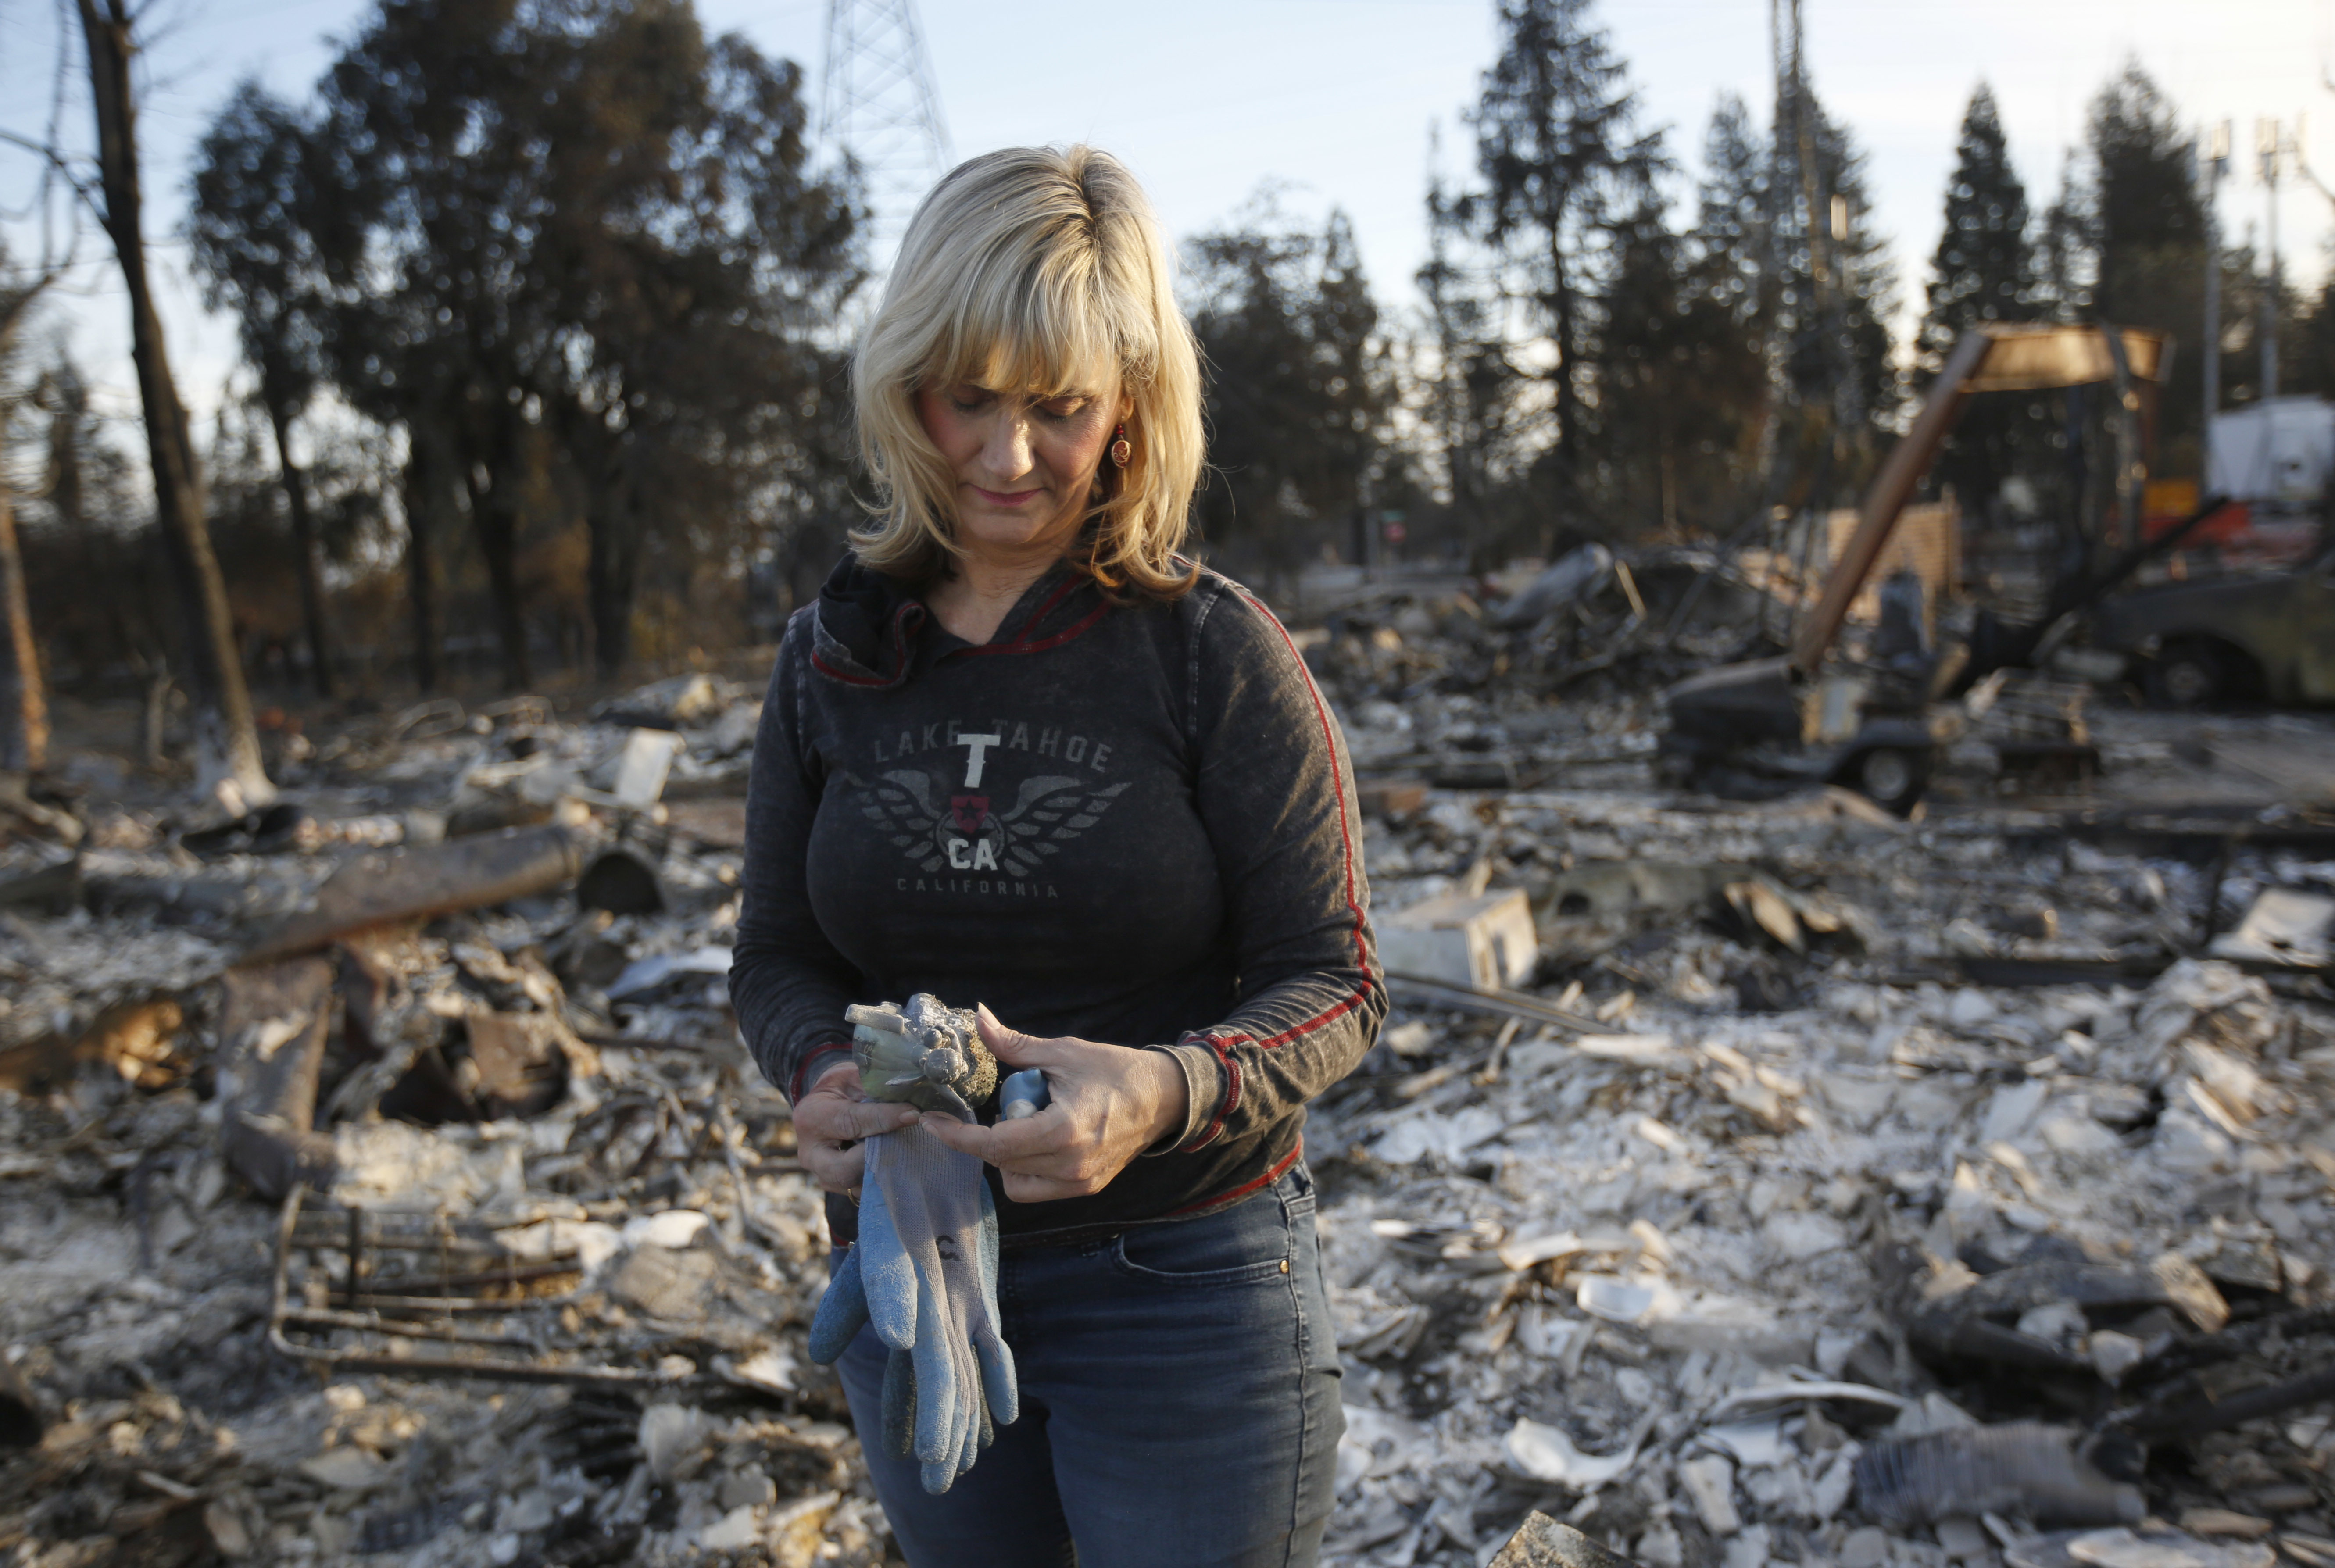 <div class='meta'><div class='origin-logo' data-origin='none'></div><span class='caption-text' data-credit='Rich Pedroncelli/AP Photo'>Debbie Wolfe stares at the broken figurine, she found in the burned ruins of her home Tuesday, Oct. 17, 2017, in Santa Rosa, Calif.</span></div>